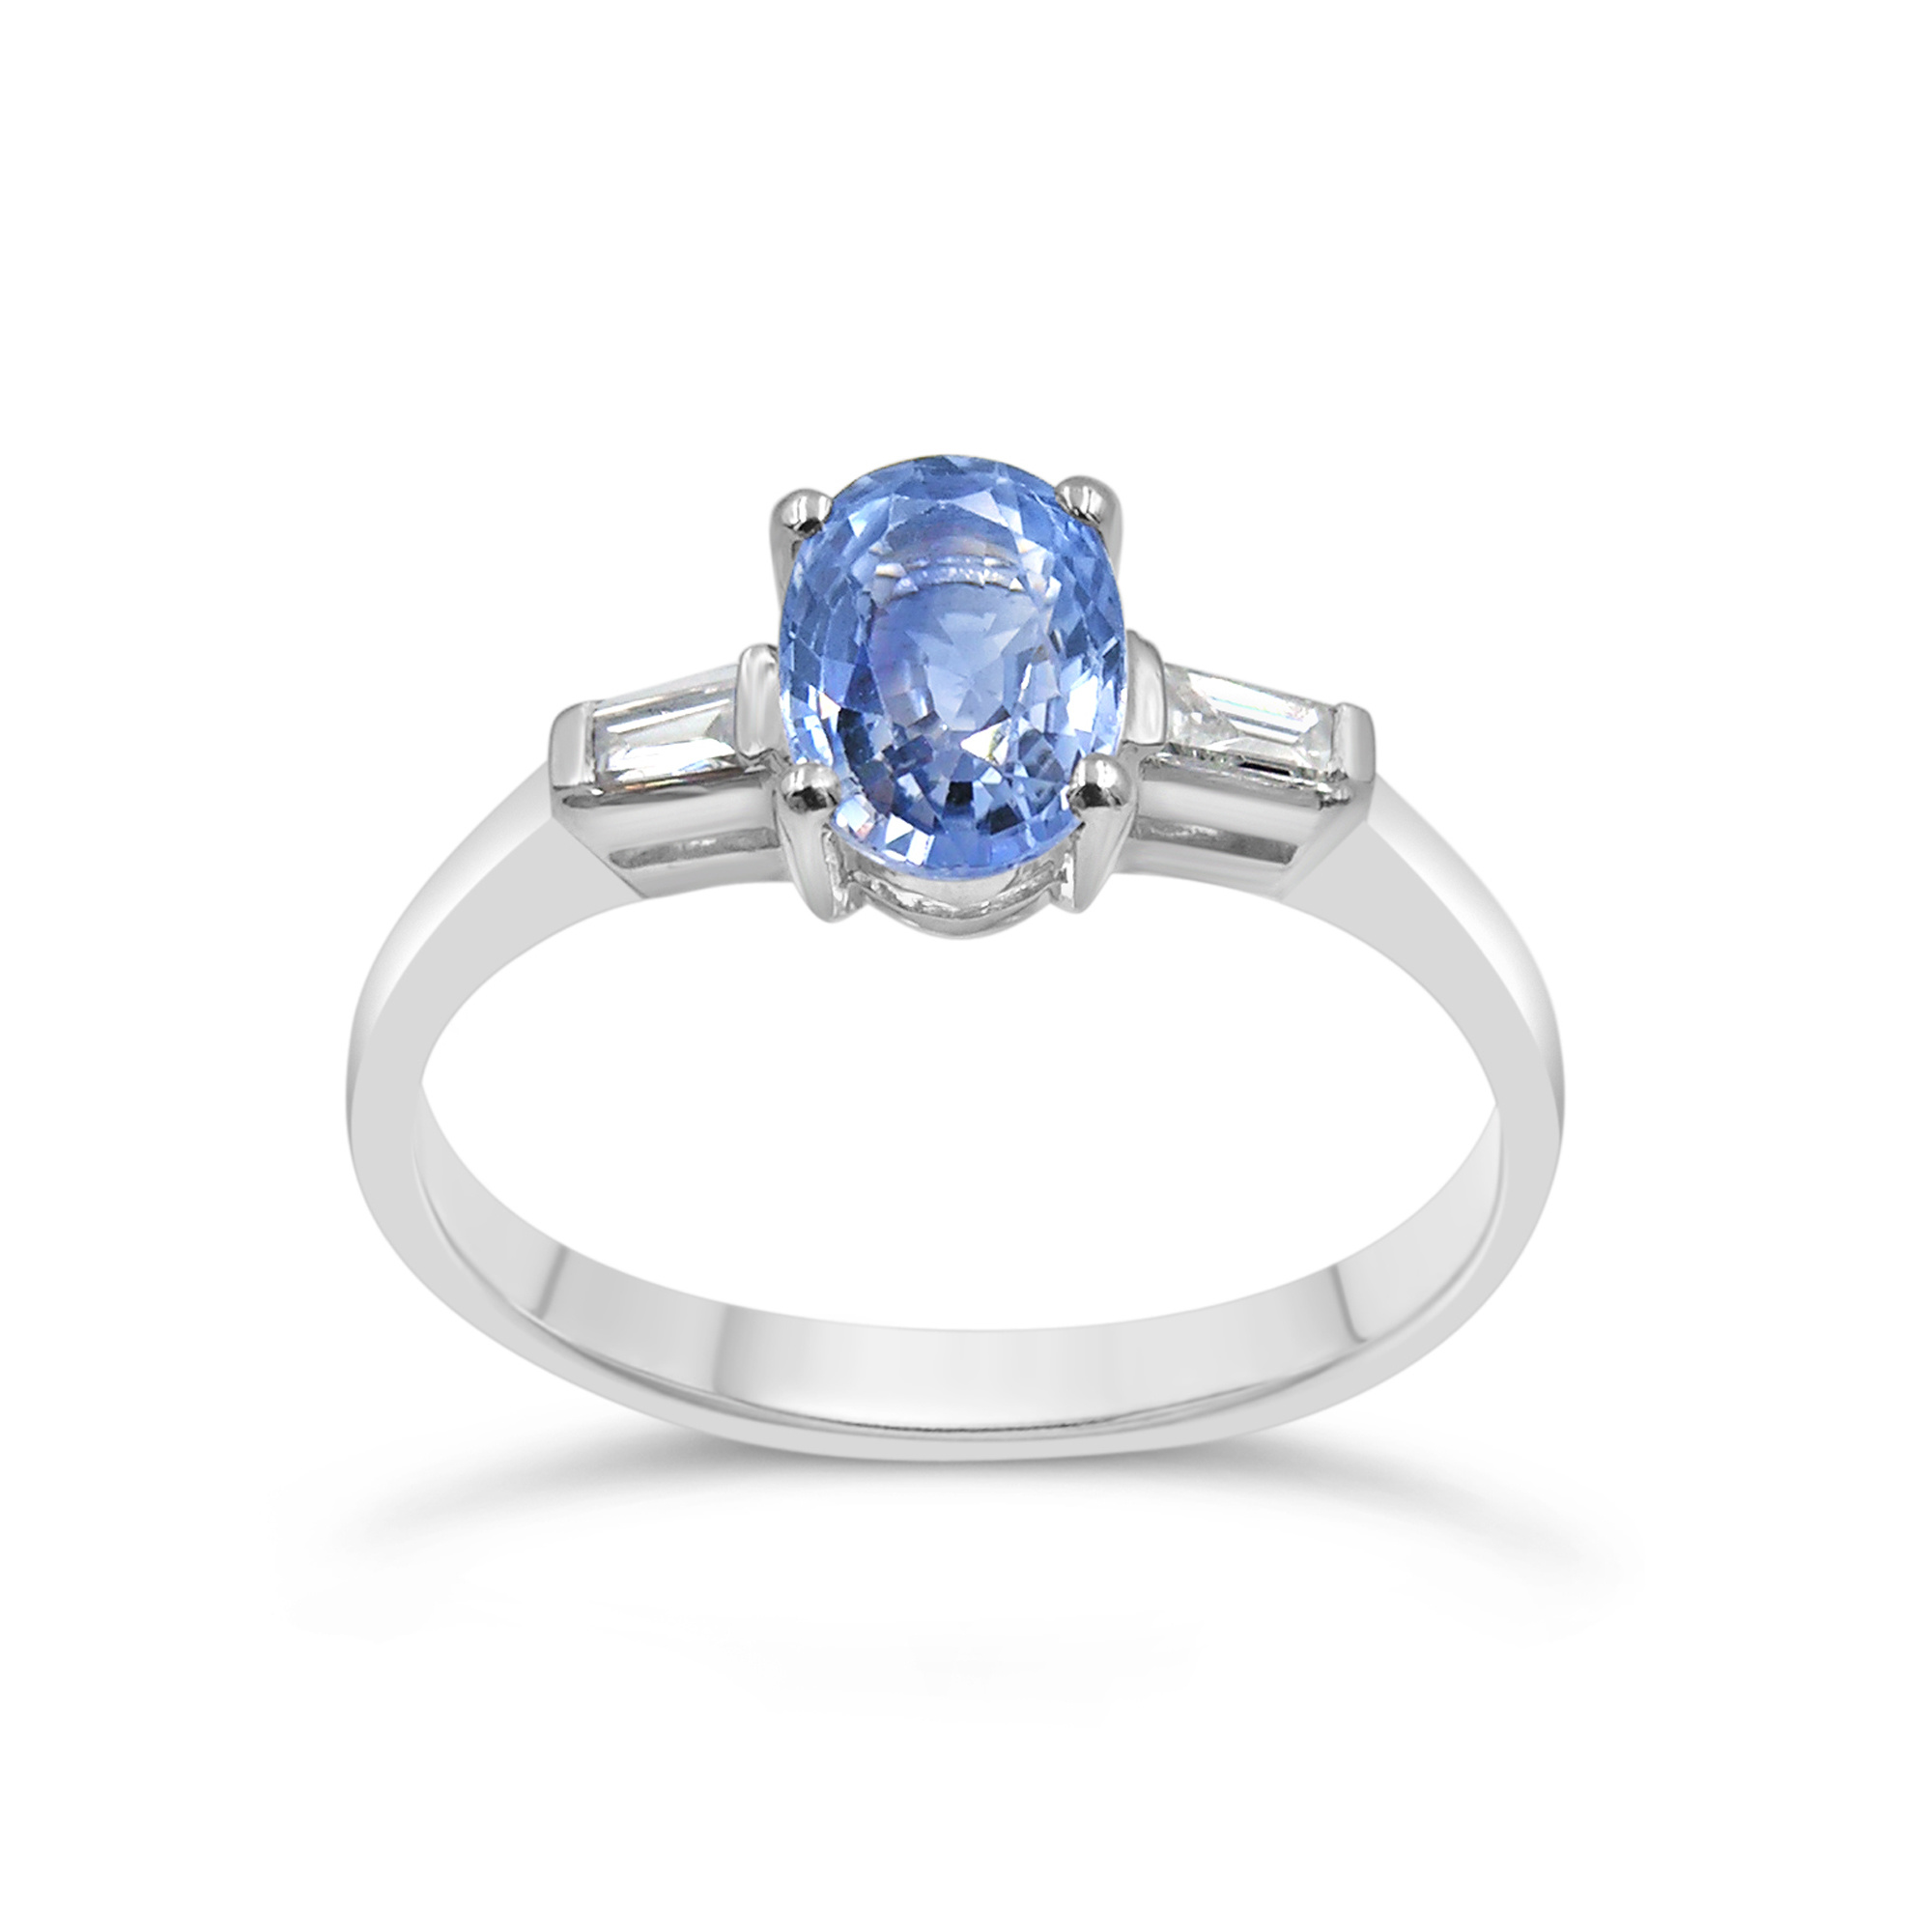 18 karaat wit goud ring met 0.16 ct diamanten & 0.87 ct saffier